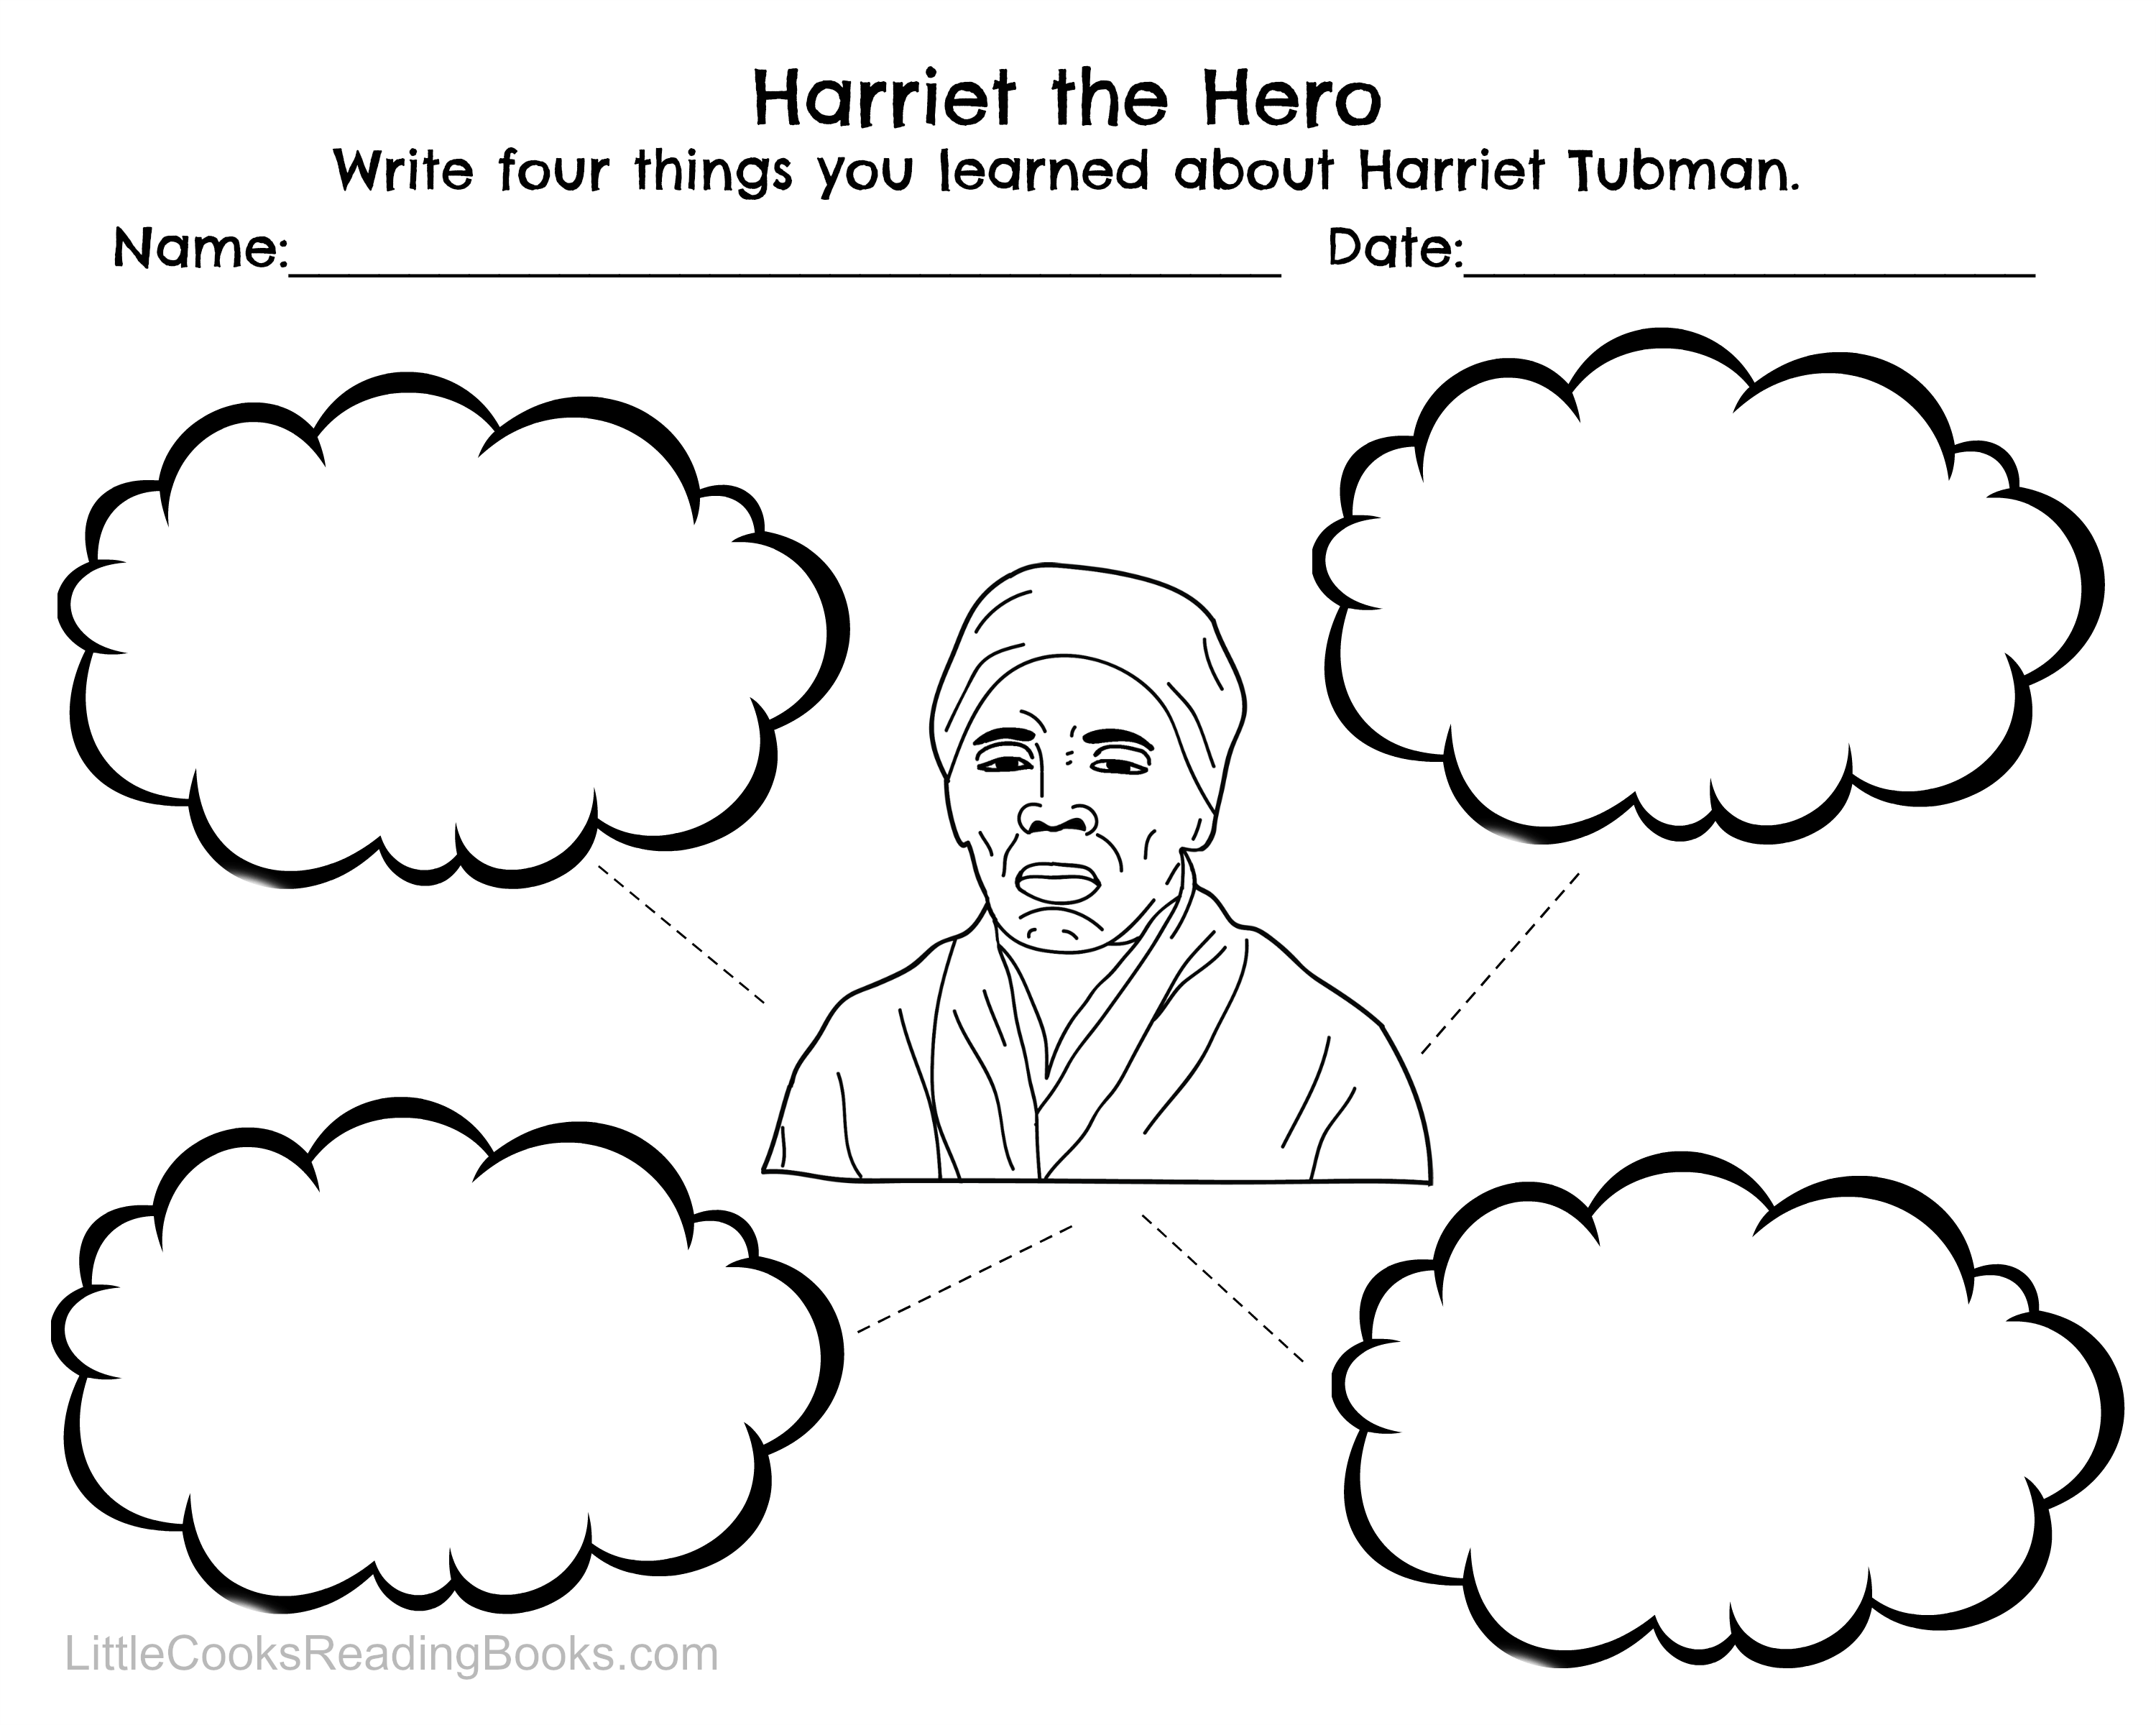 Coloring pages for underground railroad - Harriet Tubman And Underground Railroad Free Printables Little Cooks Reading Books